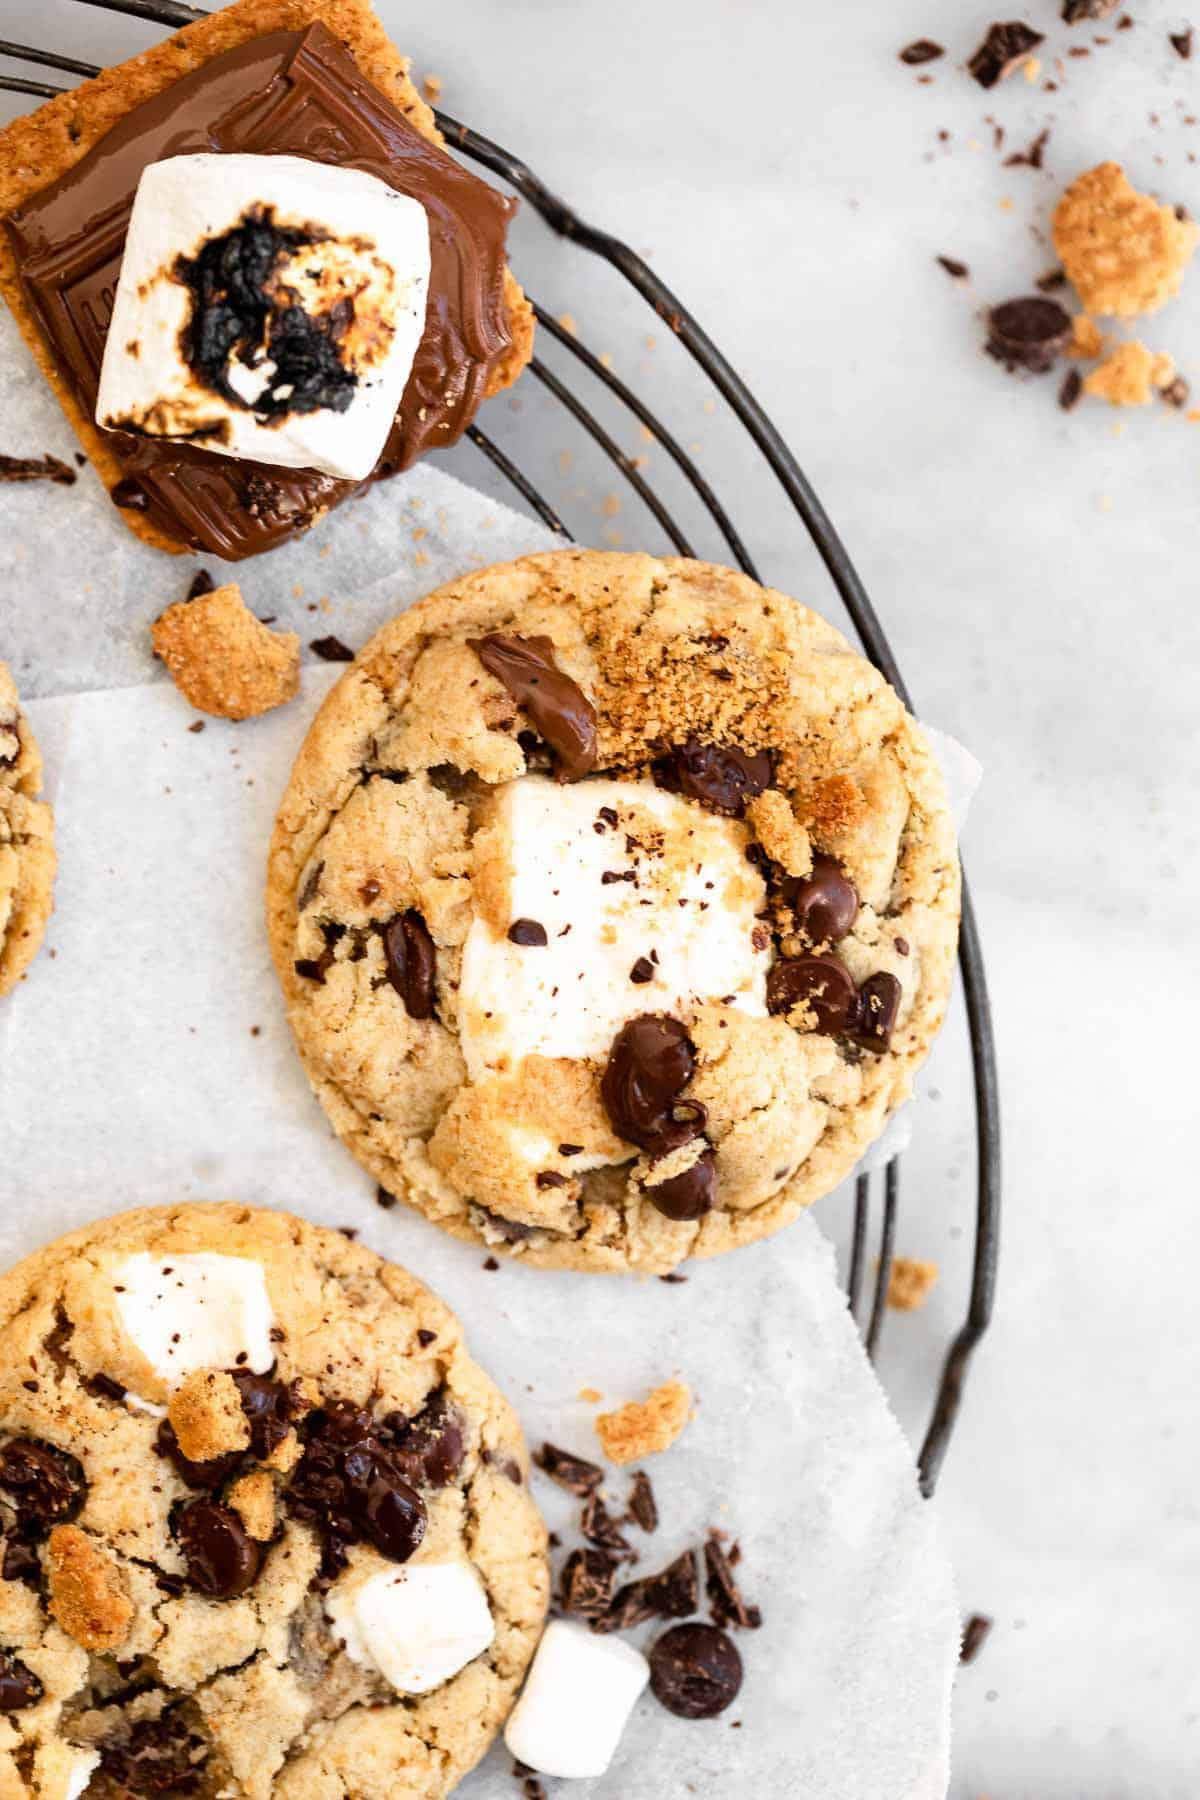 marshmallow smores cookies with melted chocolate on a wire rack